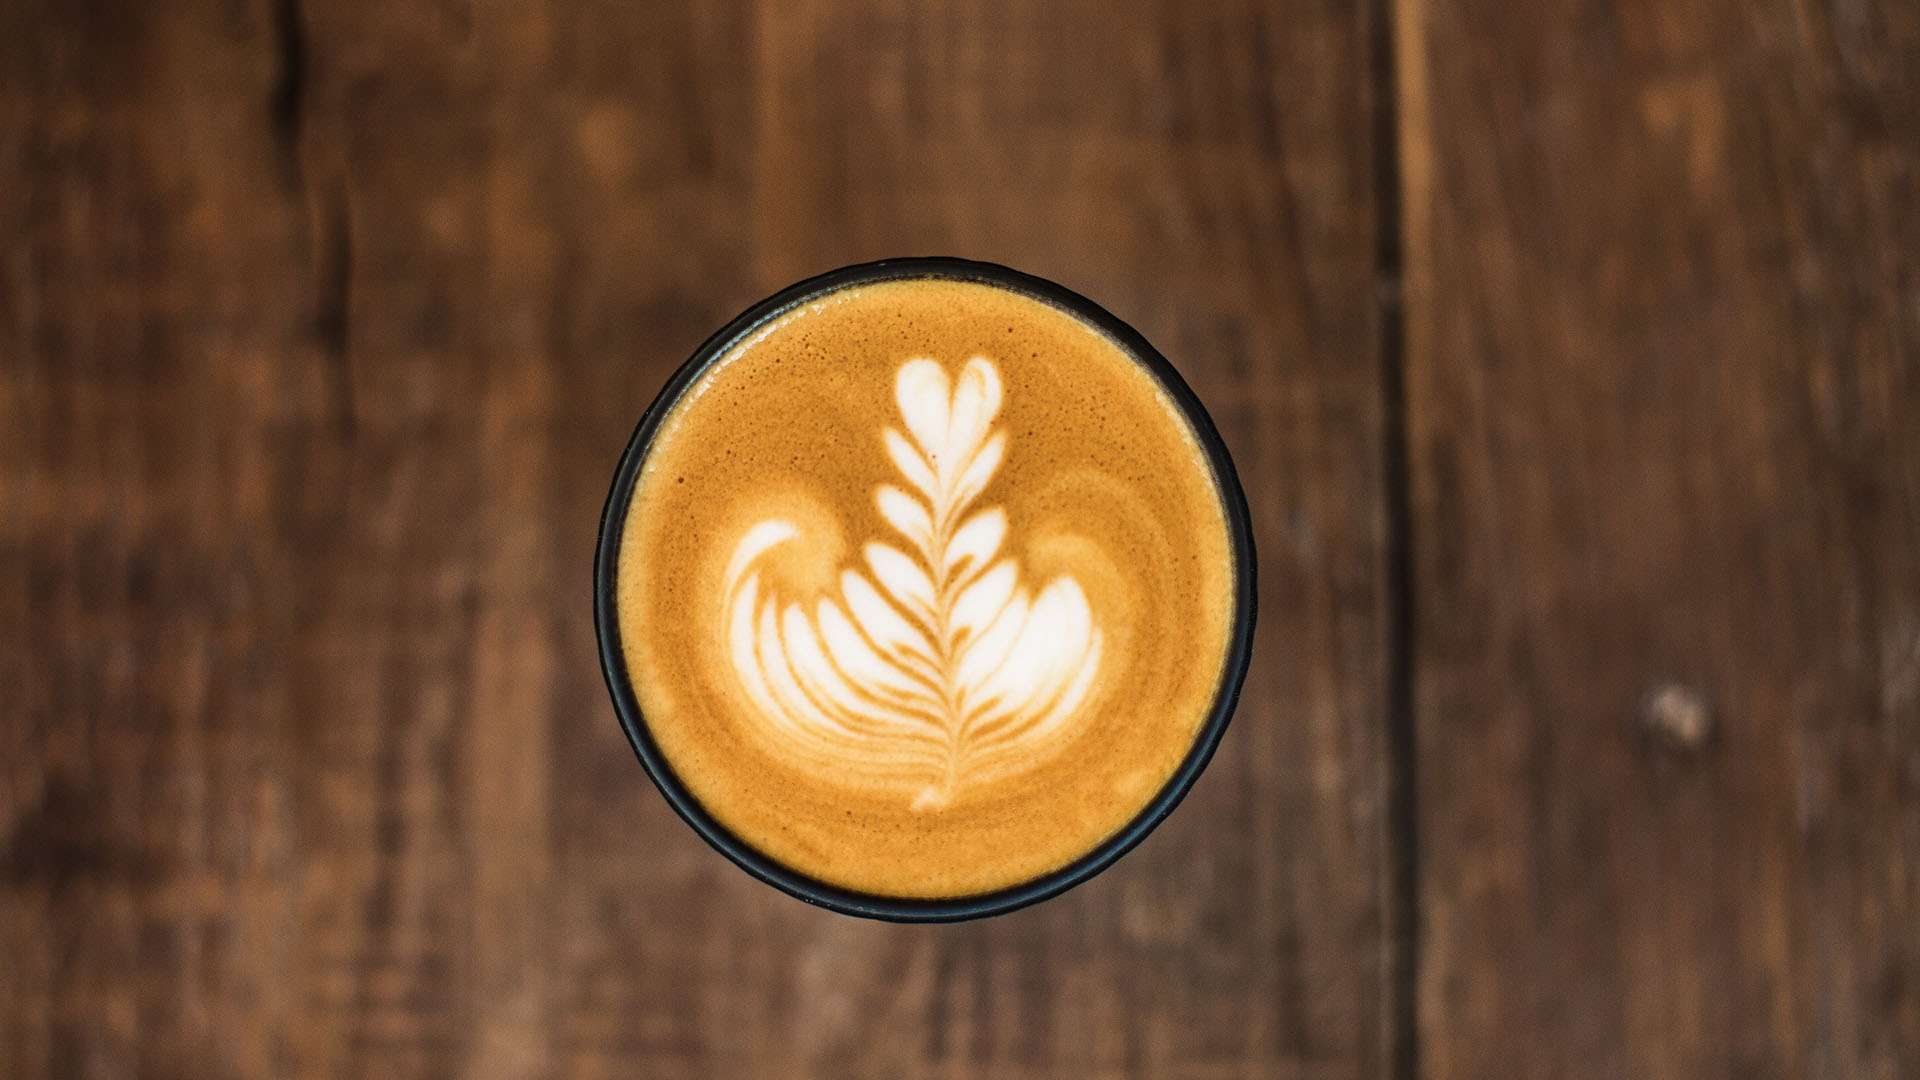 Best coffees in London: a cappuccino at Caravan